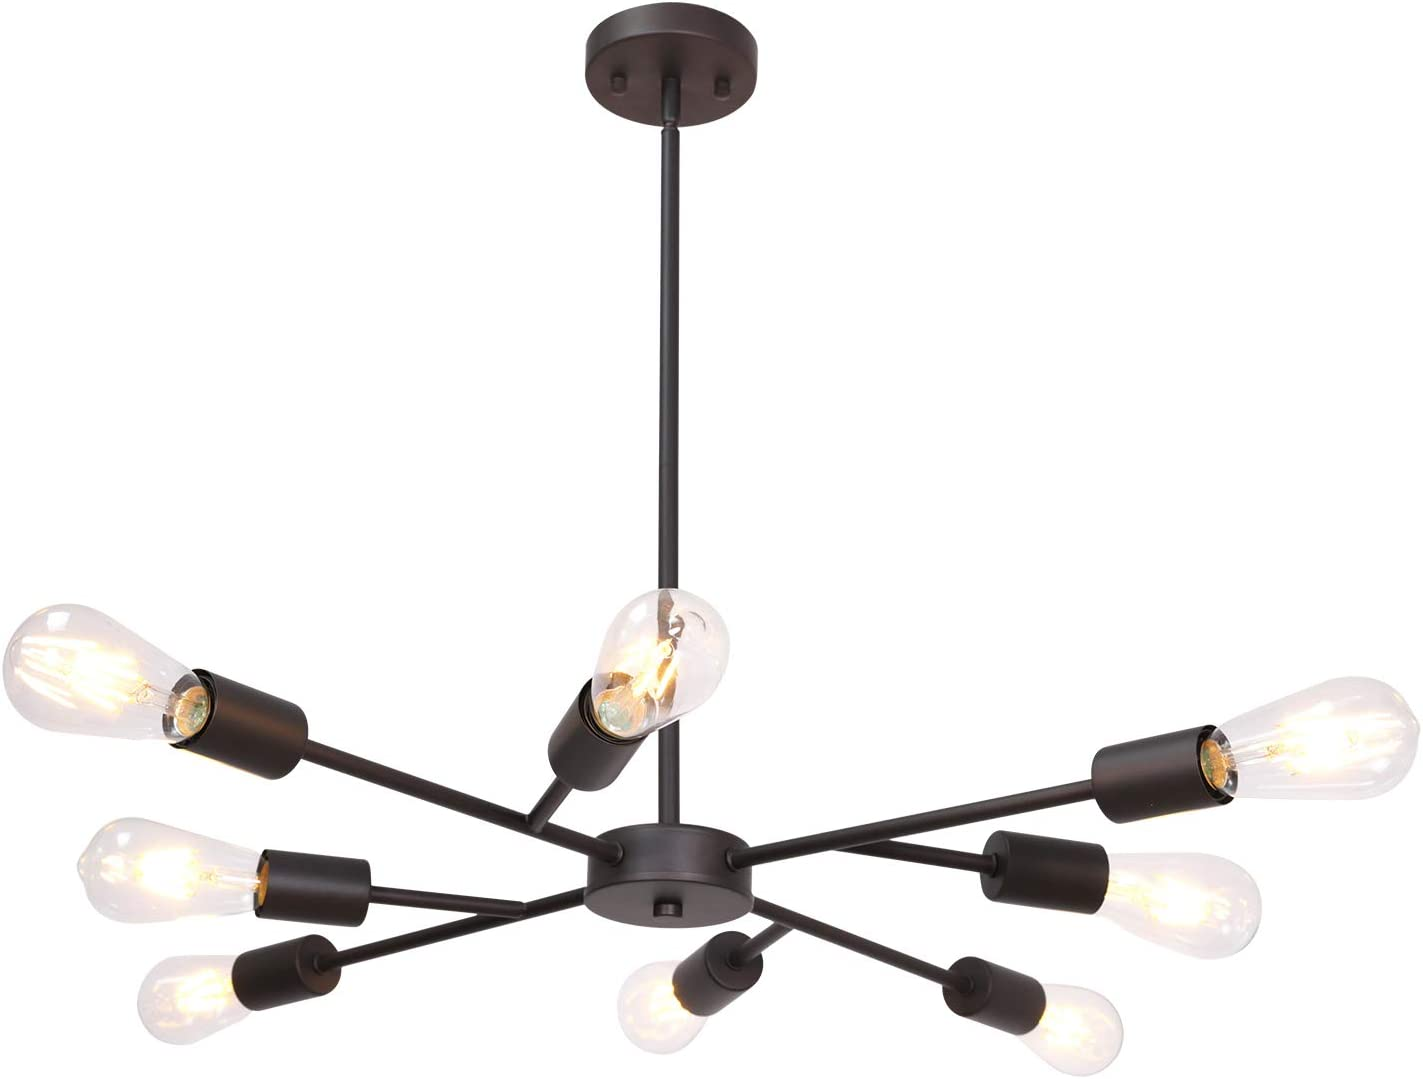 Lucidce Modern Sputnik Chandelier Lighting 8 Lights Oil Rubbed Bronze Finish with Adjustable Arms Mid Century Pendant Light Vintage Industrial Farmhouse Ceiling Light Fixture